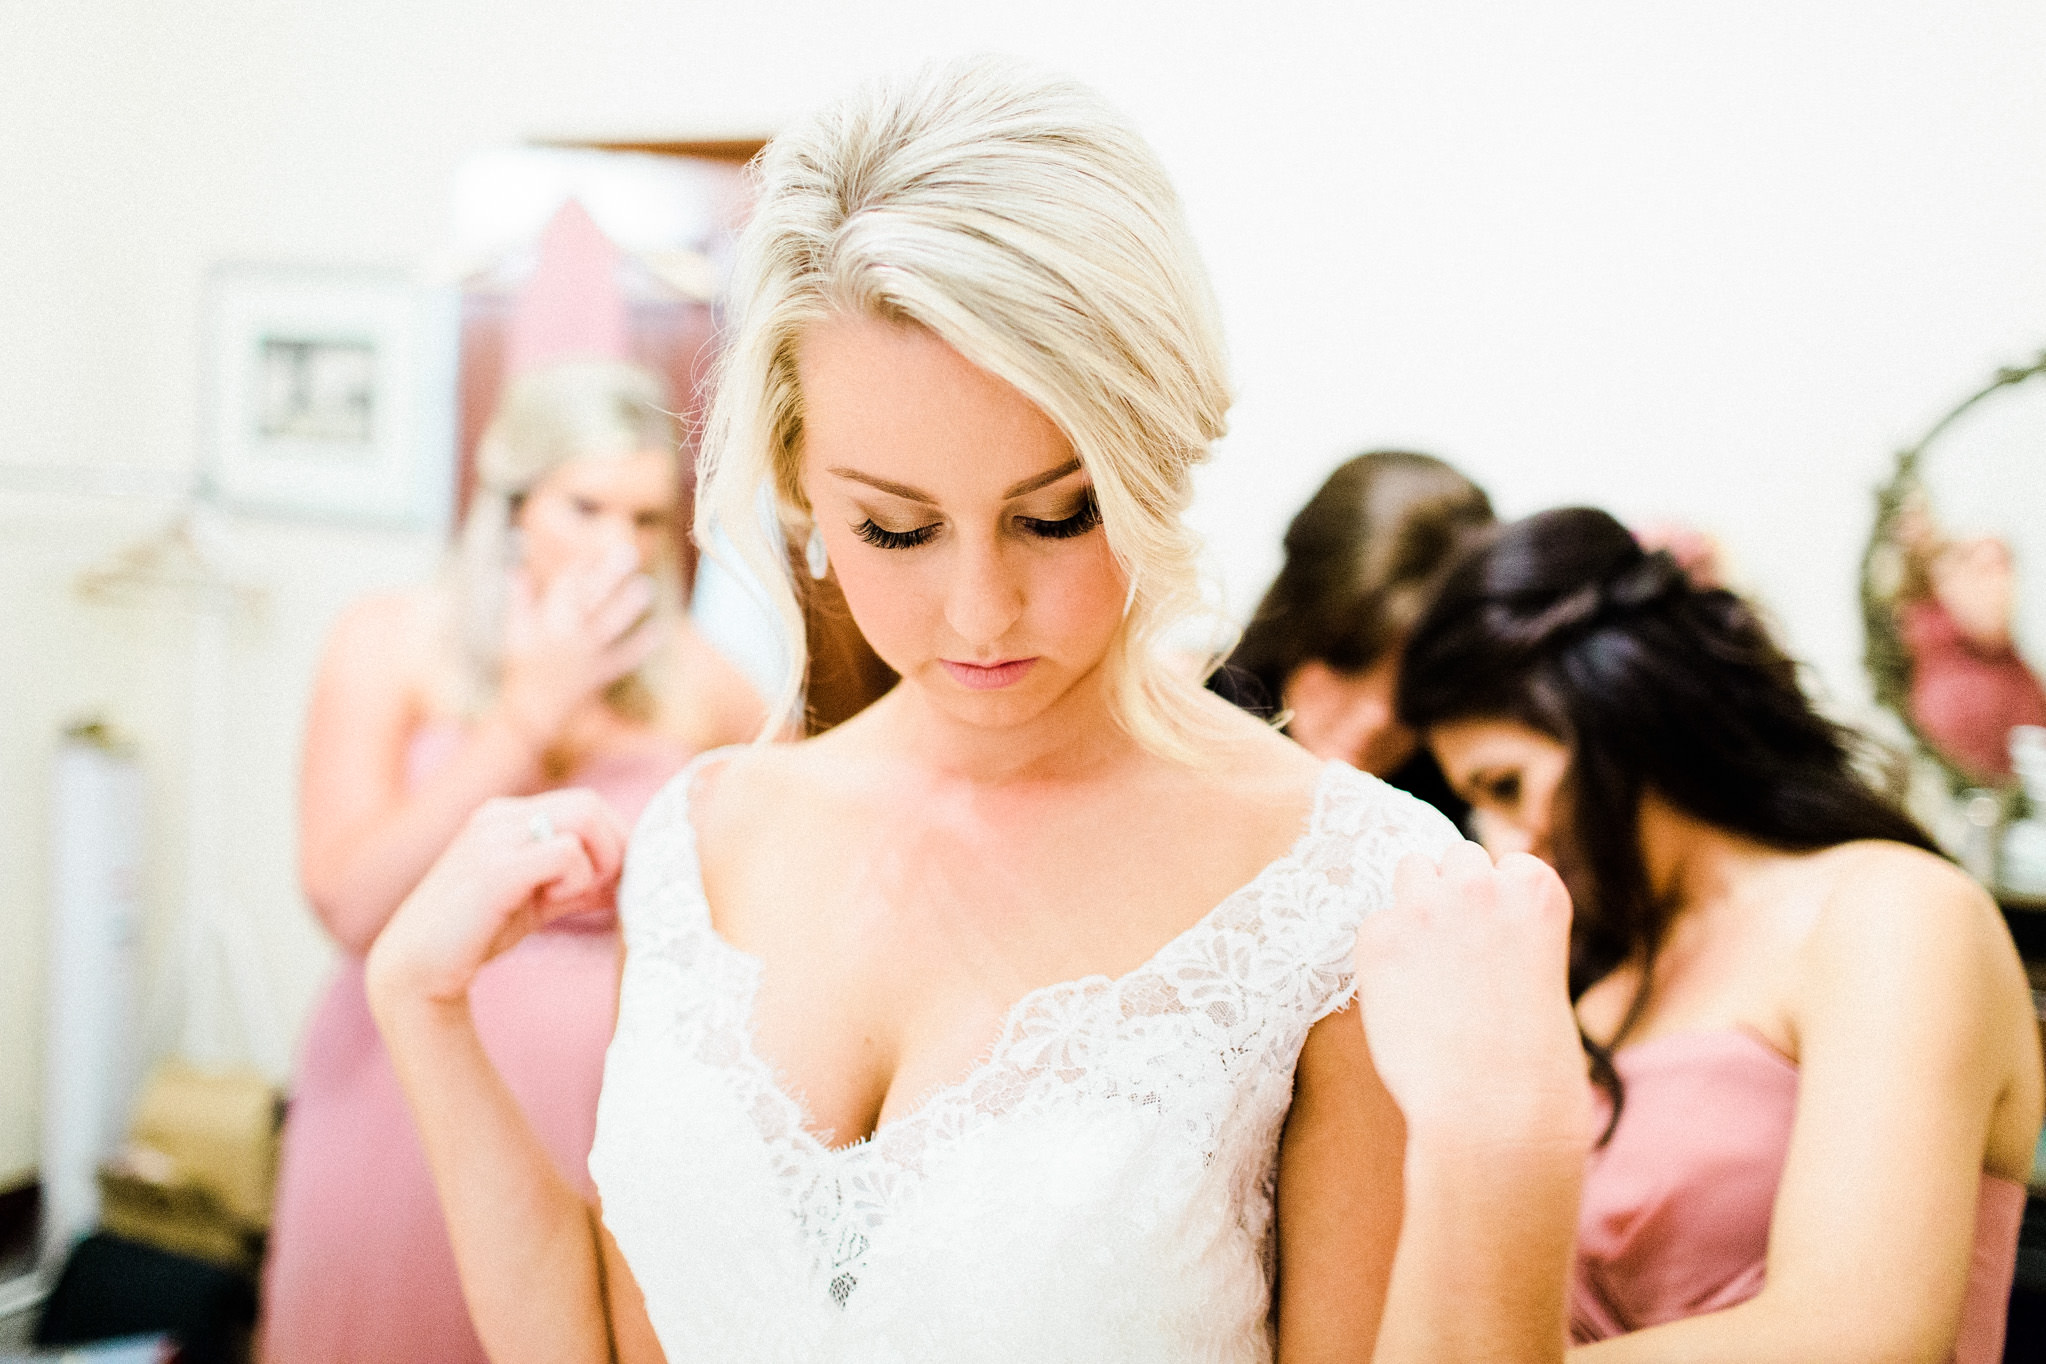 Wedding_Photographer_Newcastle_JoMatt-1040.jpg